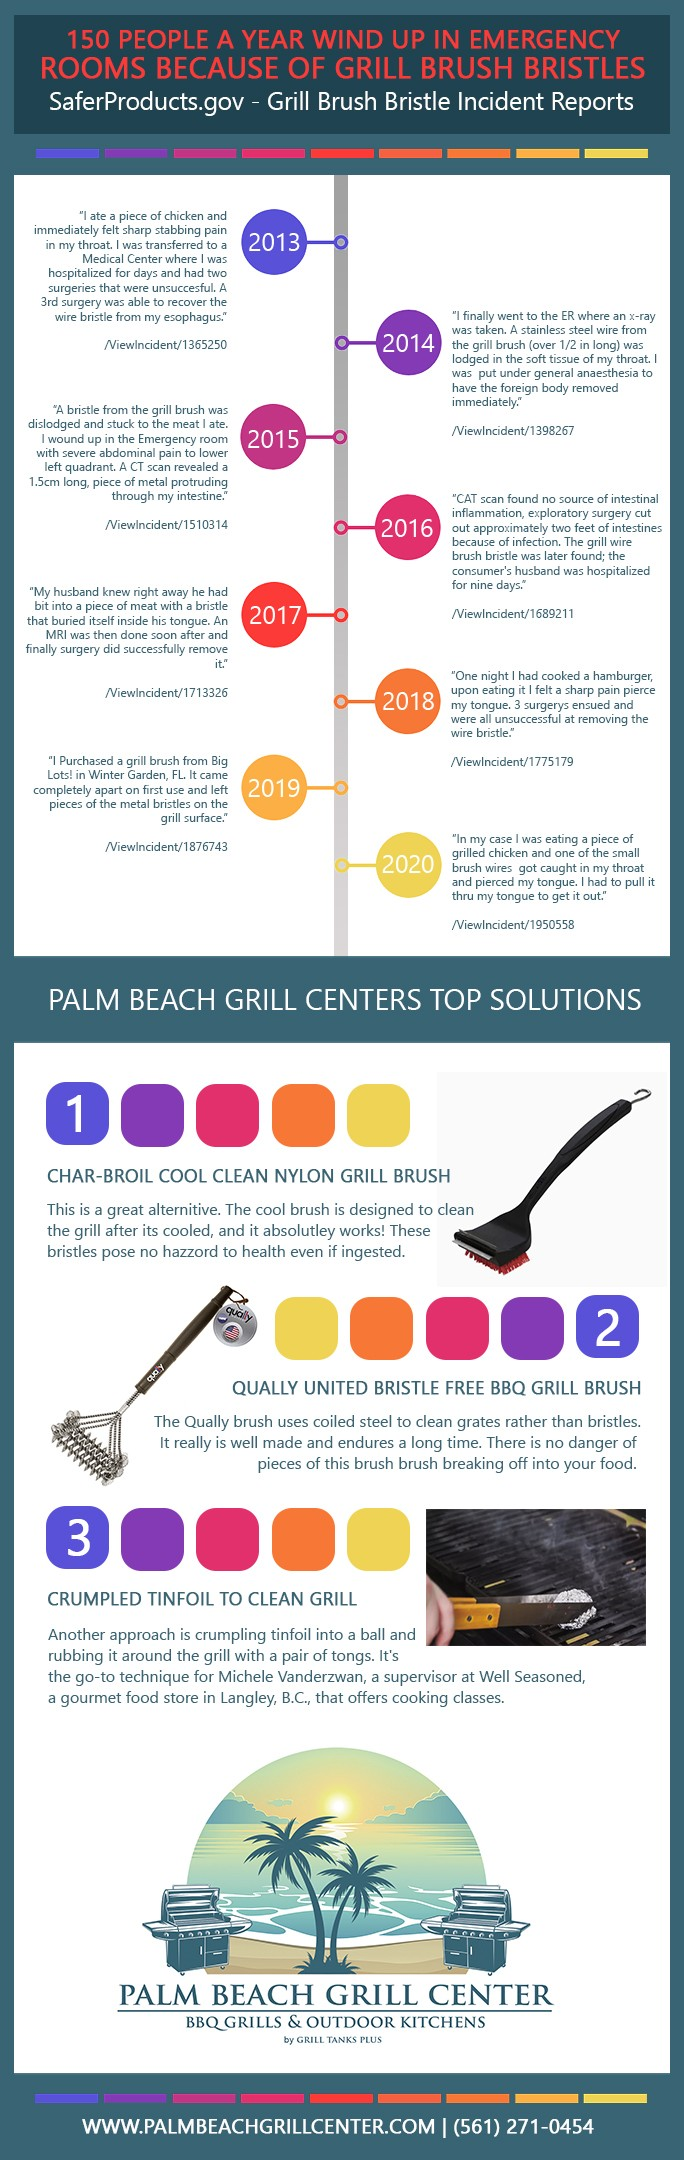 info-graphic showing BBQ grill brush bristle incidents for 2013 to 2020 as well as the solution